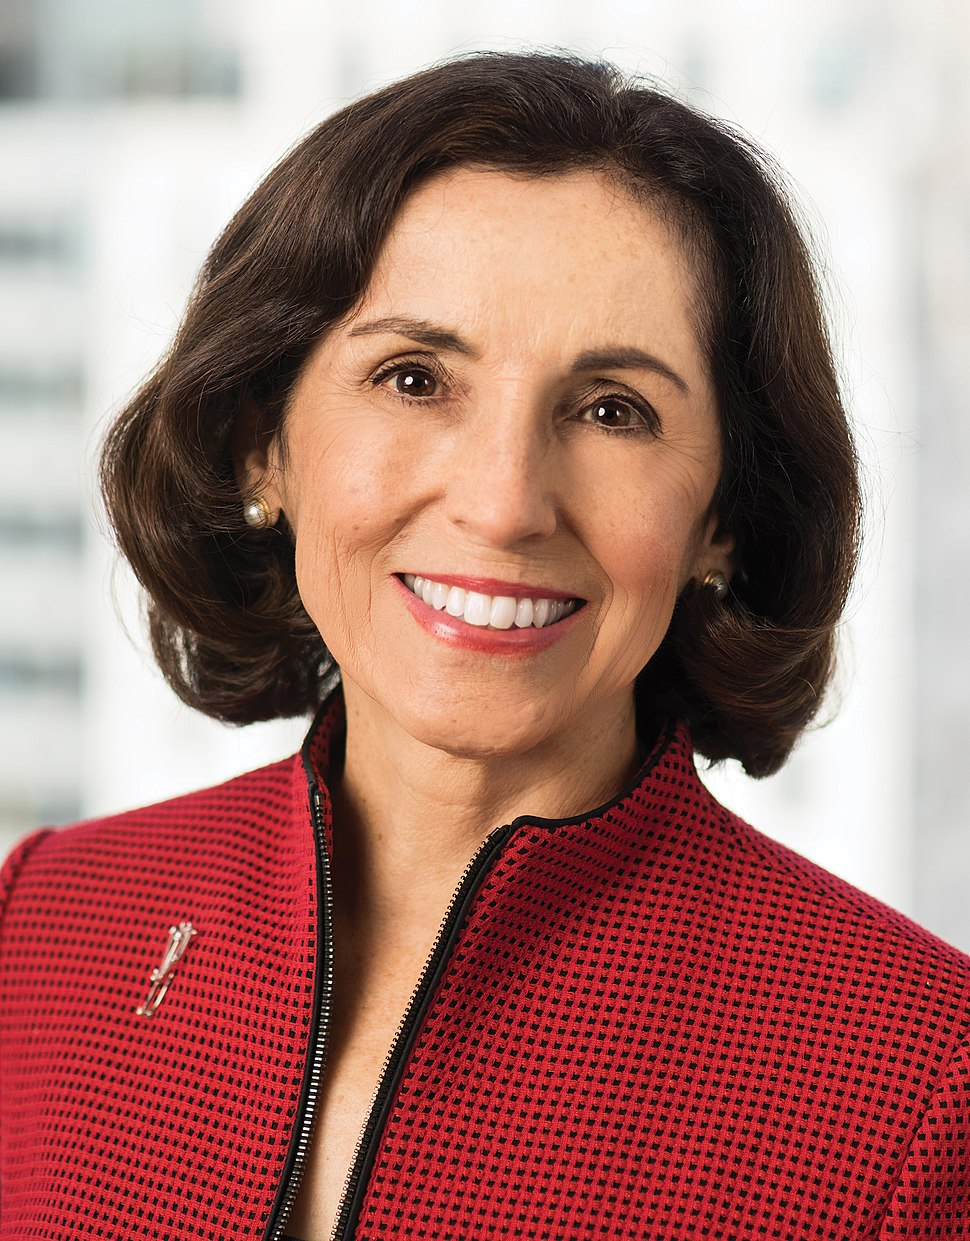 France A. Córdova official photo